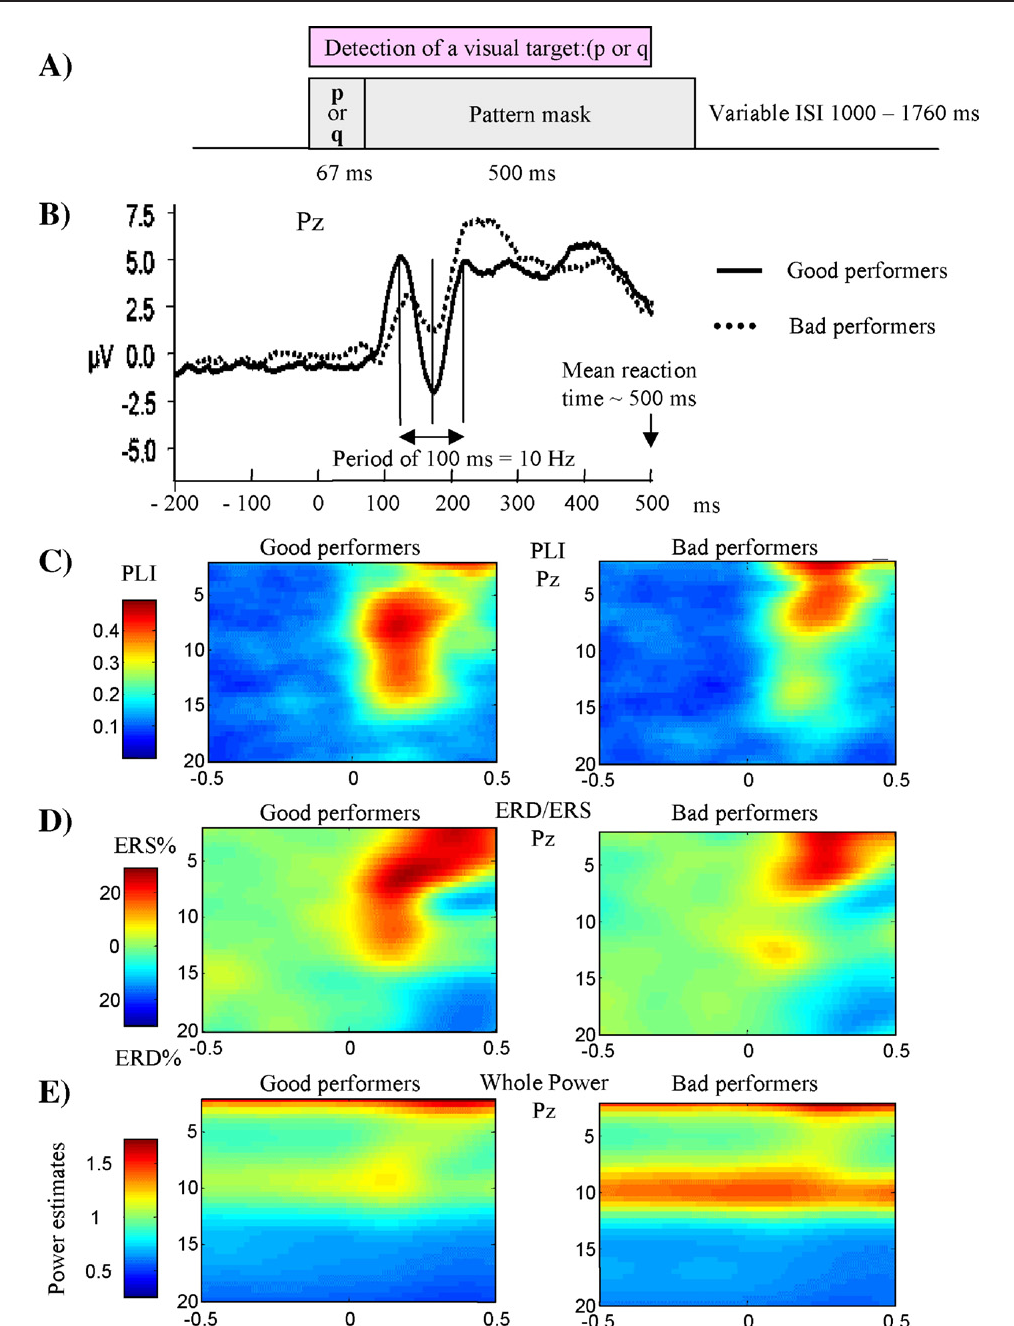 Fig. 7 – In a visual target detection task in which subjects had to identify briefly exposed letters (A), the event-related alpha response is primarily characterized by phase locking and not by power changes (reprinted from Hanslmayr et al., 2005a, with permission from Elsevier). (B) The waveform of ERPs is characterized by evoked alpha activity, which is more pronounced for good performers. (C) The extent of alpha phase reset, as measured by the phase locking index (PLI) is larger for good than bad performers. (D) The event-related change in upper alpha is characterized by ERS and a complete lack of ERD. (E) The lack of desynchronization and the large differences in prestimulus power between good an bad performers is clearly evident in the time/frequency/(wavelet) power plot.